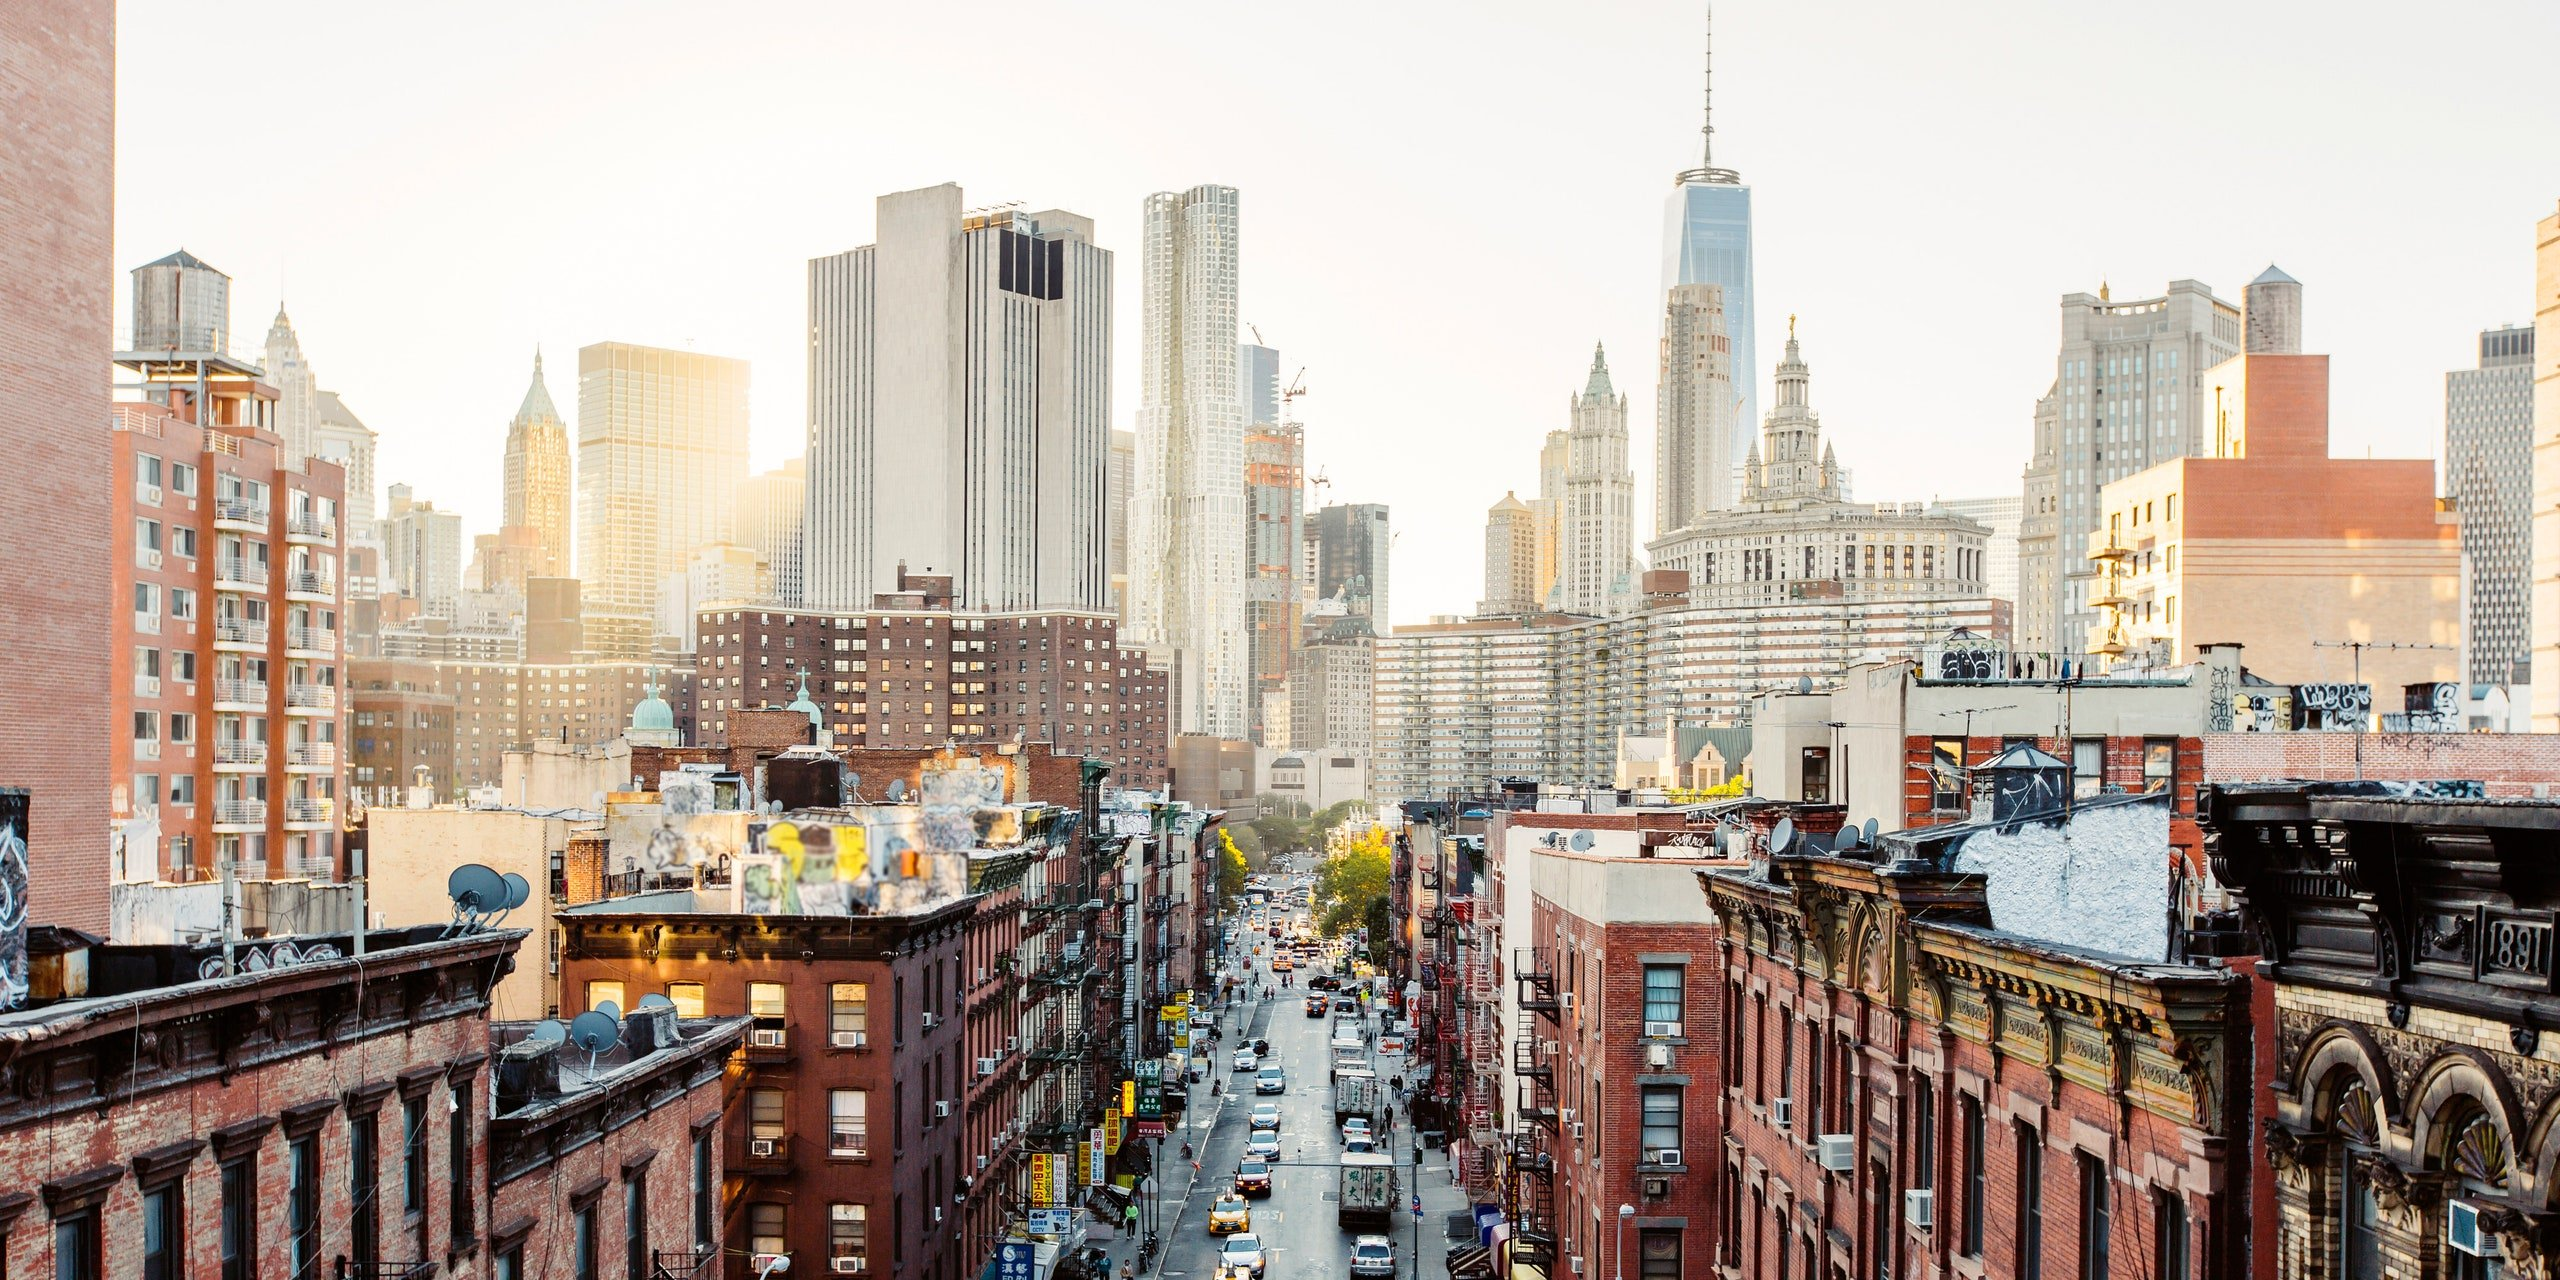 nyc no fee apartments, Experience NYC in Heritage Collection's No Fee Apartments